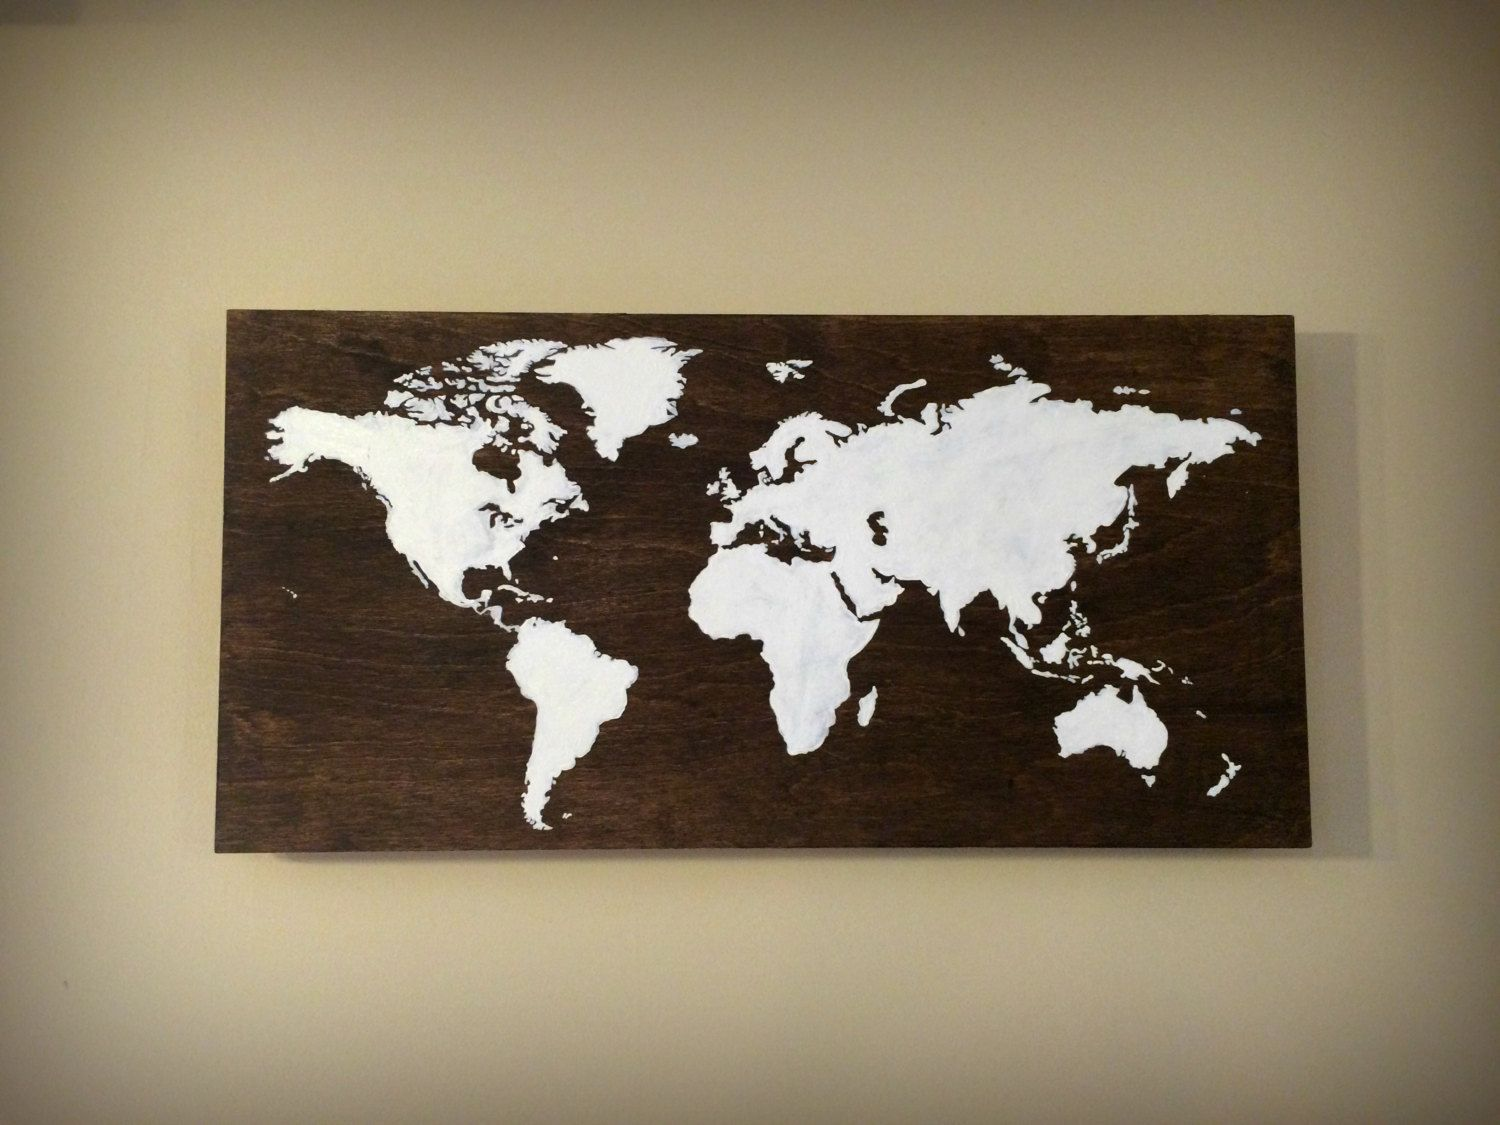 Rustic wood world map wooden map of the world handpainted wood rustic wood world map wooden map of the world handpainted wood map rustic gumiabroncs Image collections